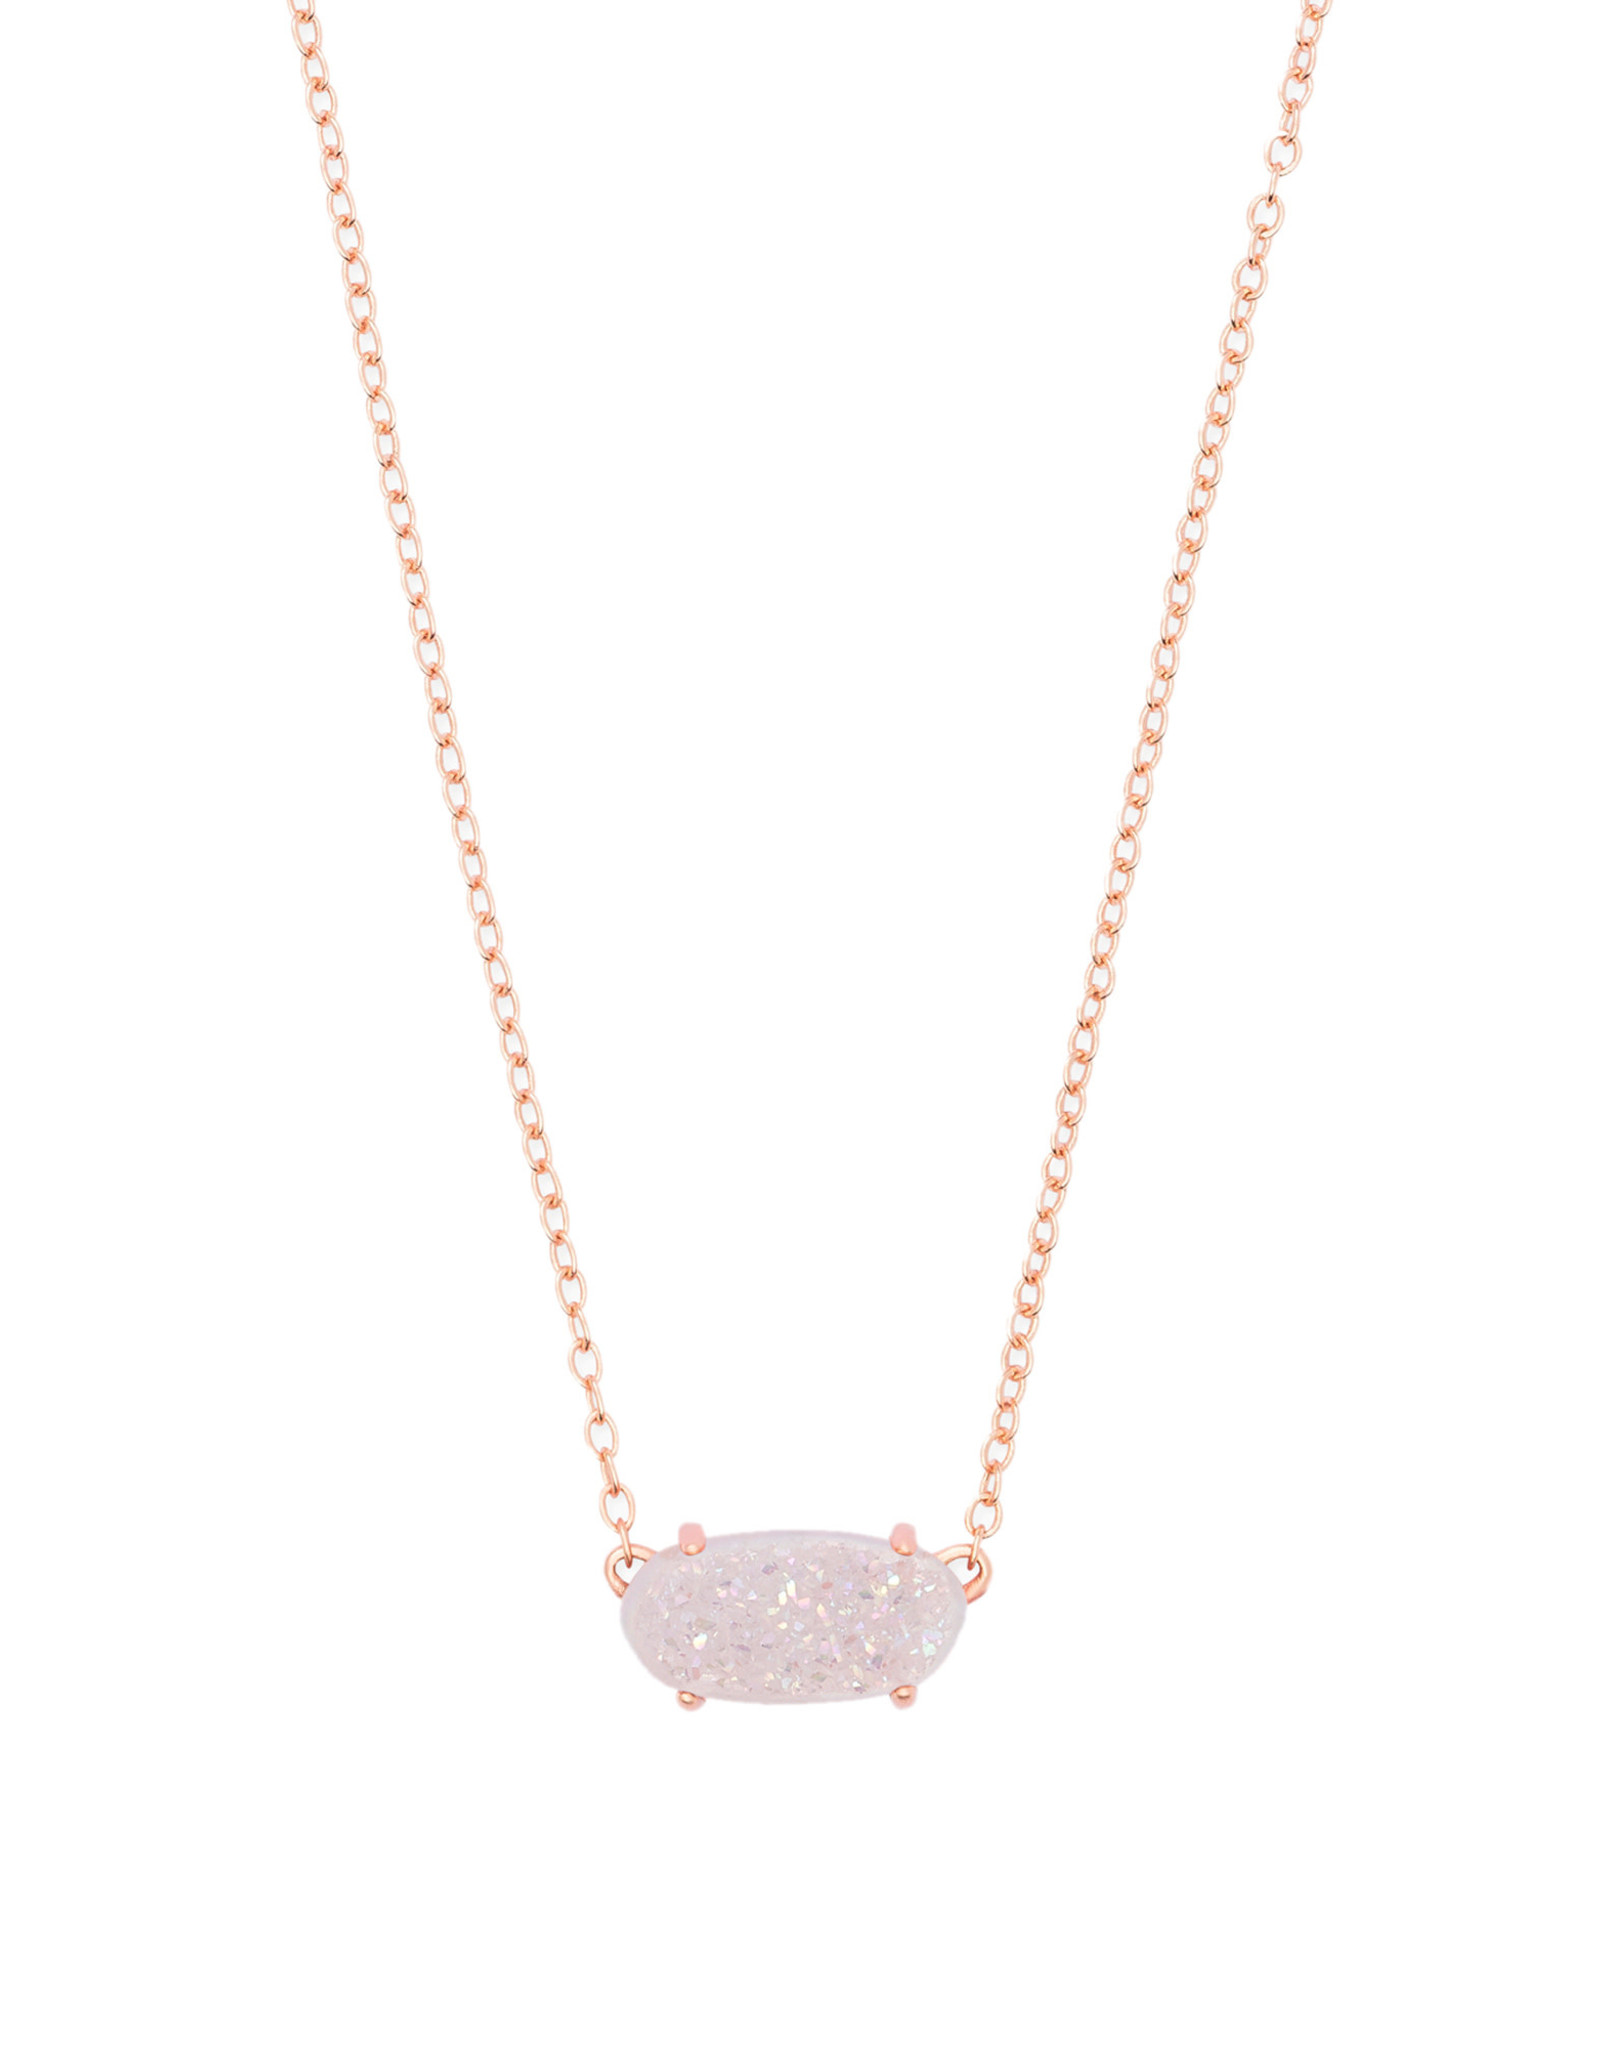 Kendra Scott Ever Necklace - Iridescent Drusy/Rose Gold